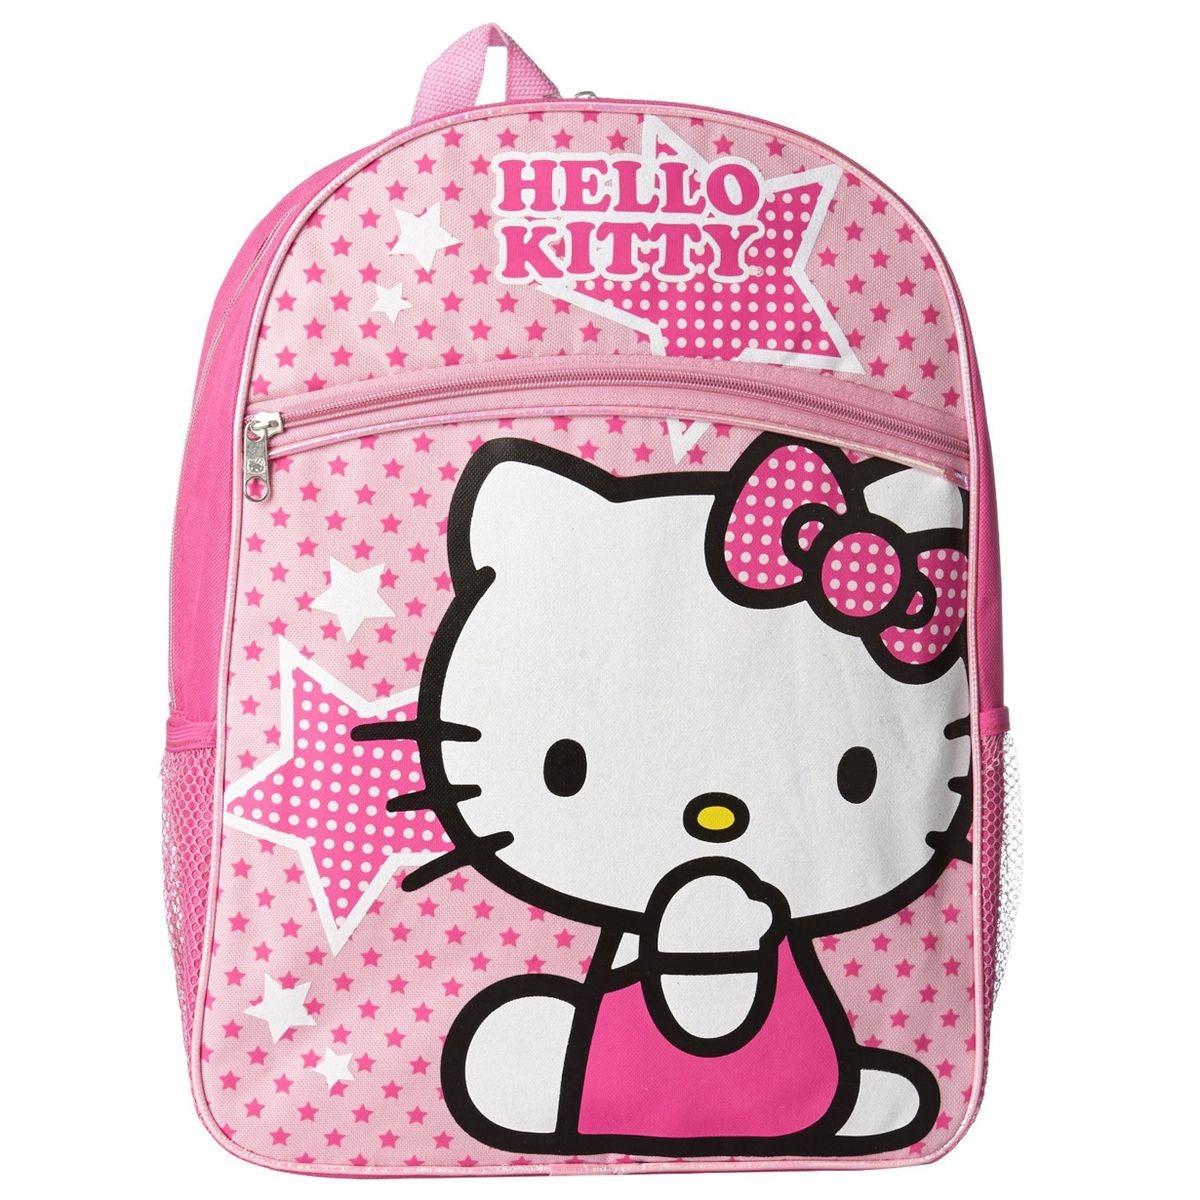 Sanrio Hello Kitty 16 Quot Large Backpack Book School Bag Star